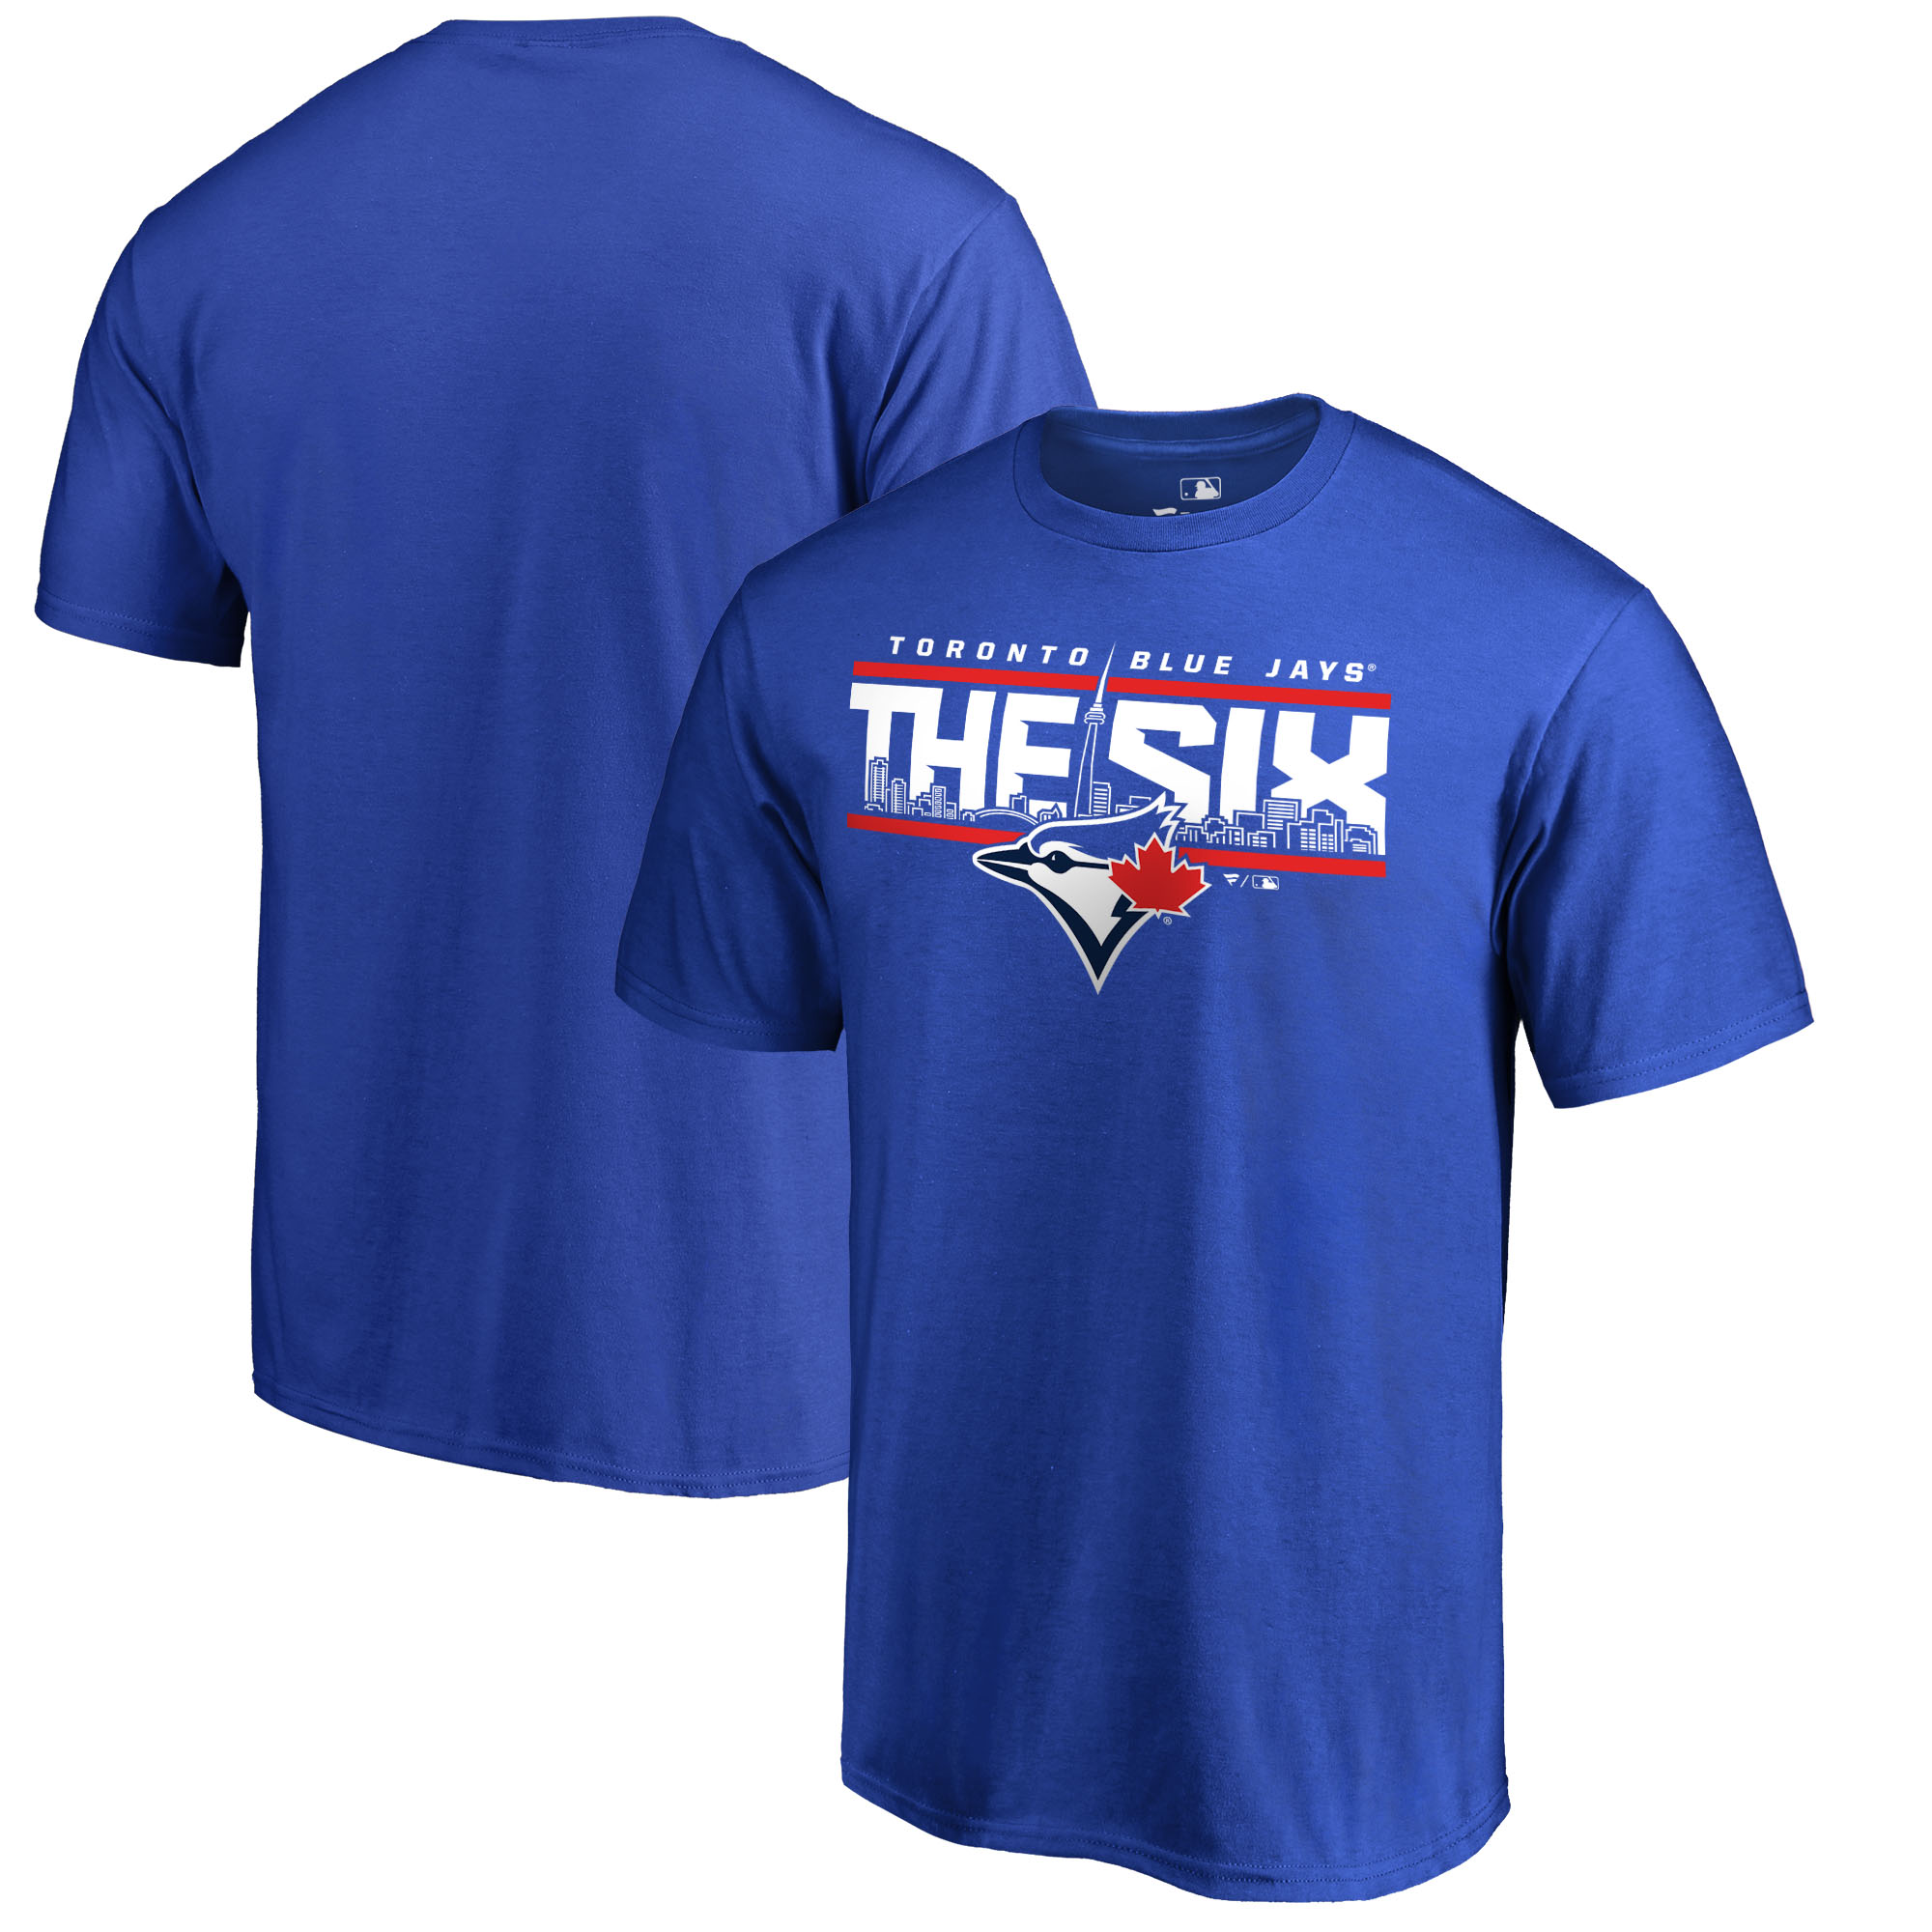 Toronto Blue Jays Fanatics Branded Hometown Collection The Six T-Shirt - Royal